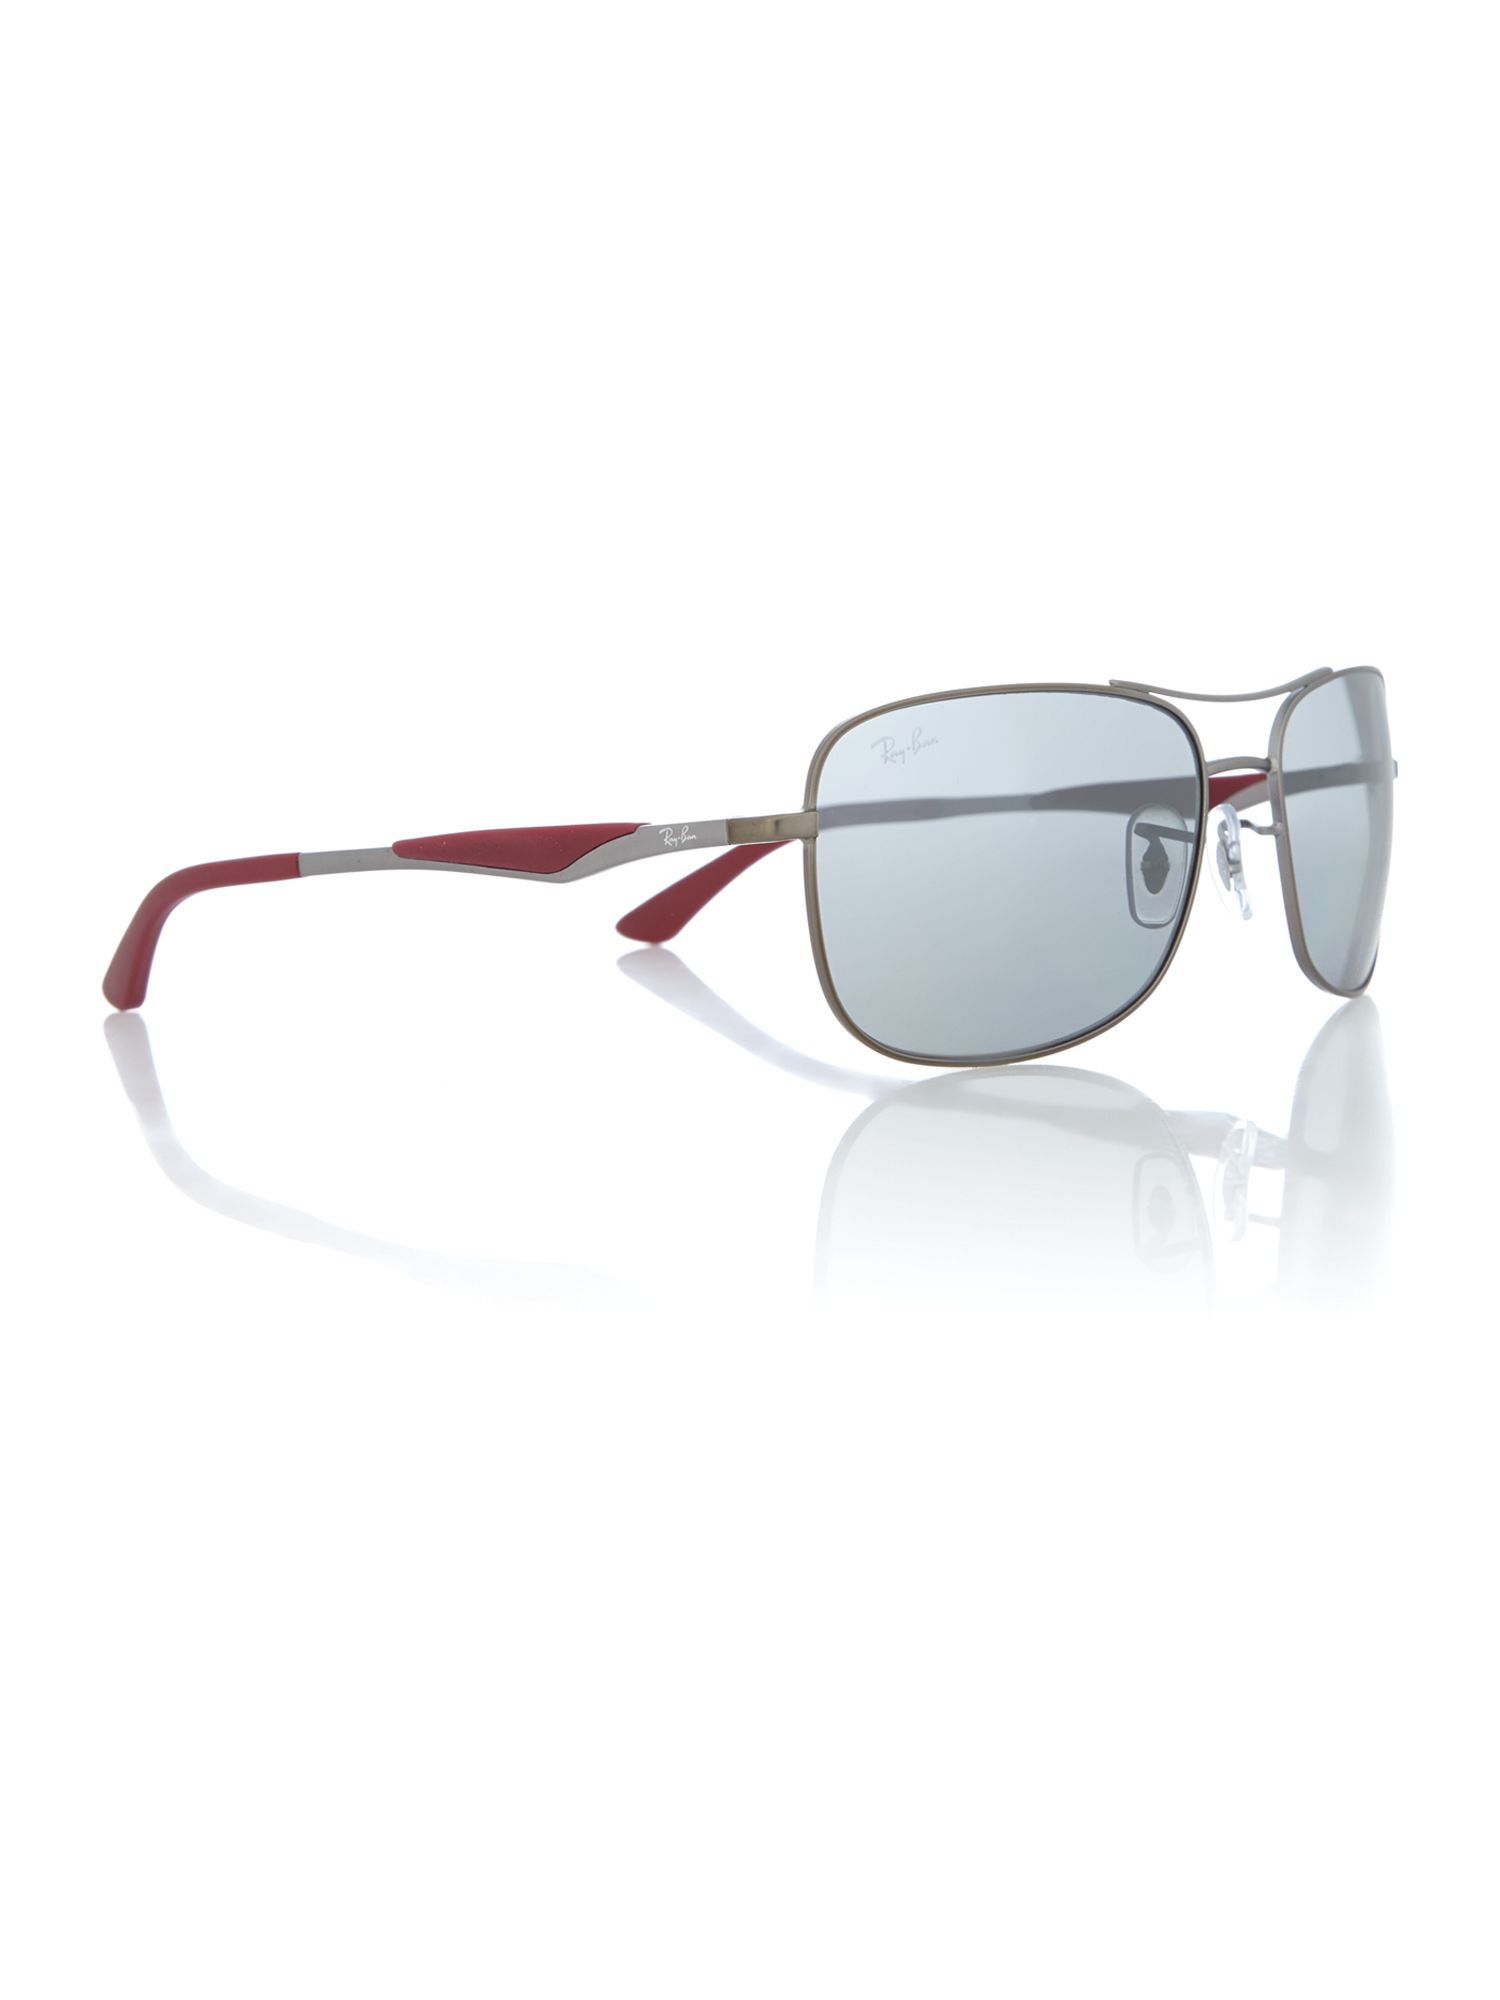 Rb3515 men`s square sunglasses